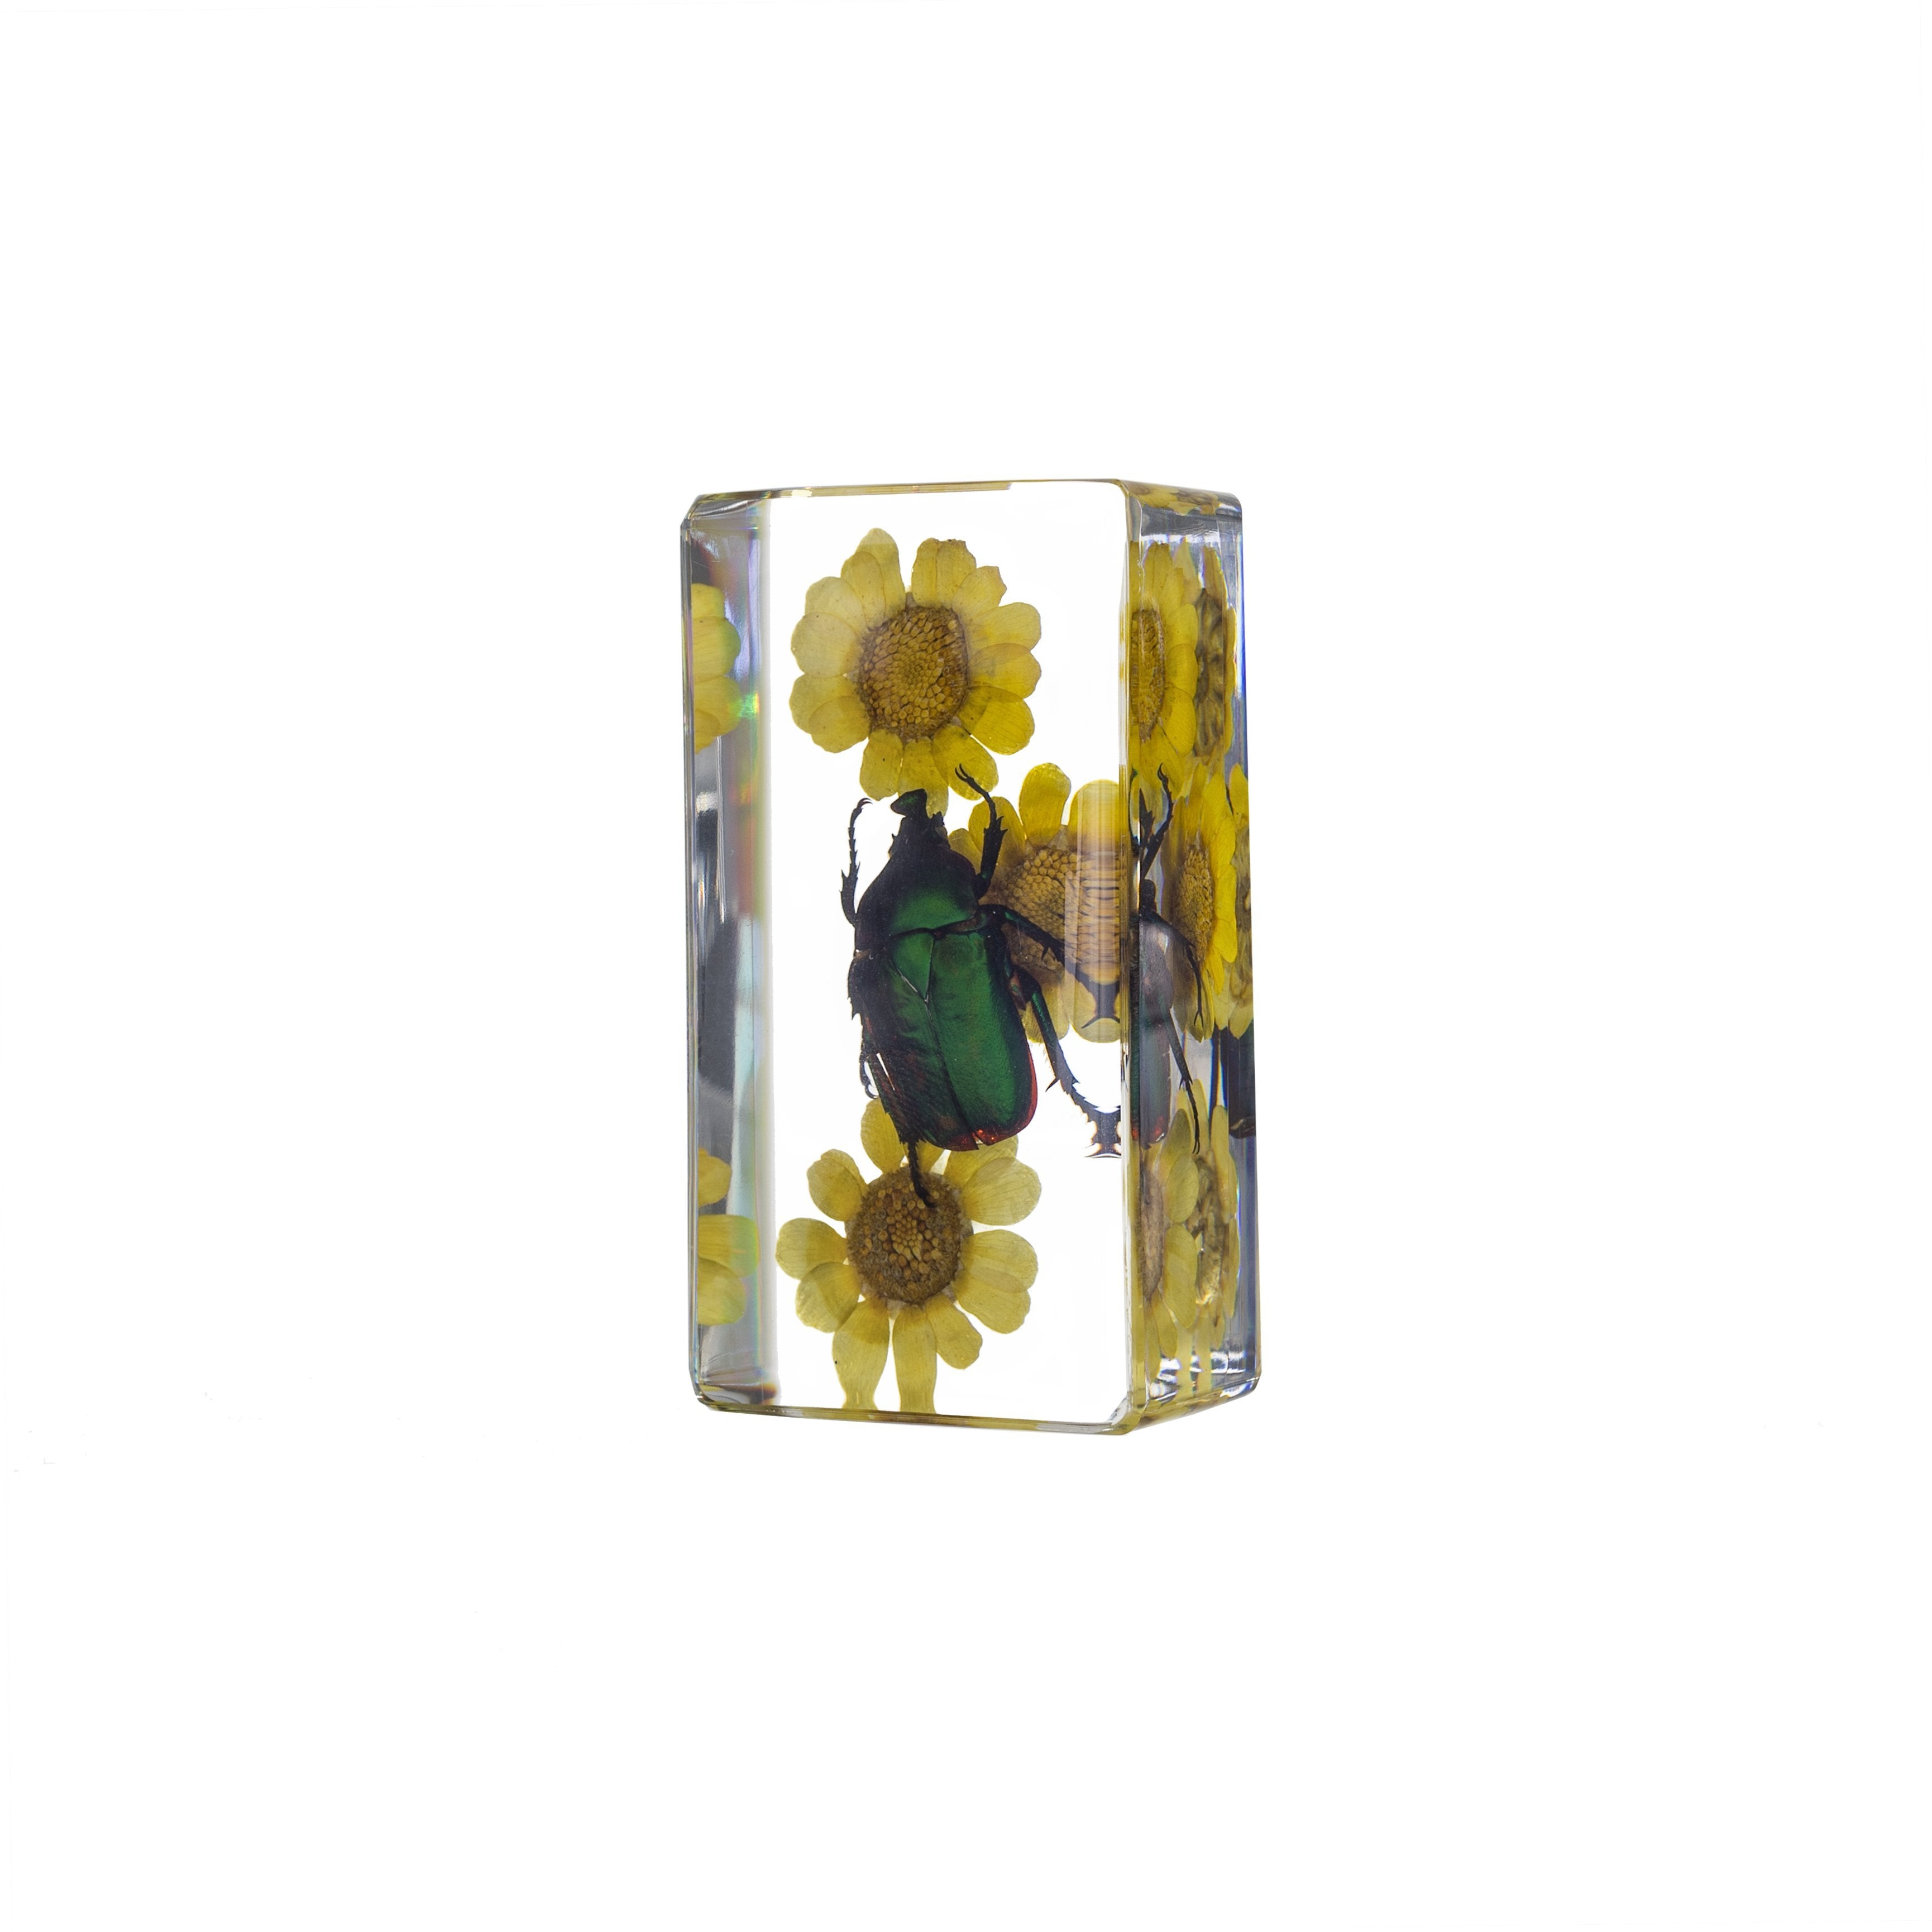 Real Acrylic Chafer Beetle W Flower Paperweight For Sale Skulls